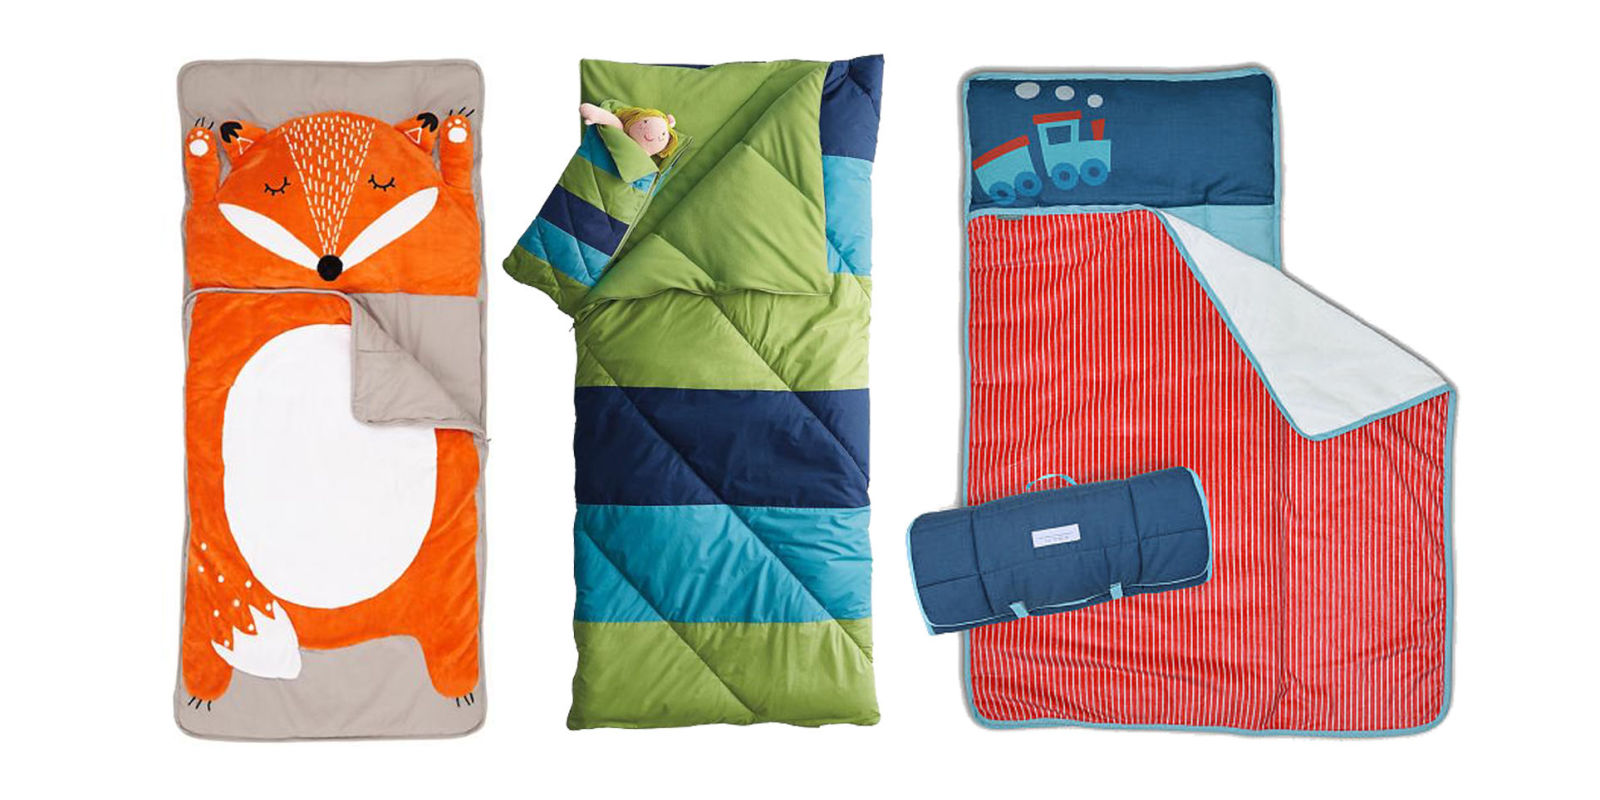 10 Best Sleeping Bags for Kids 2016